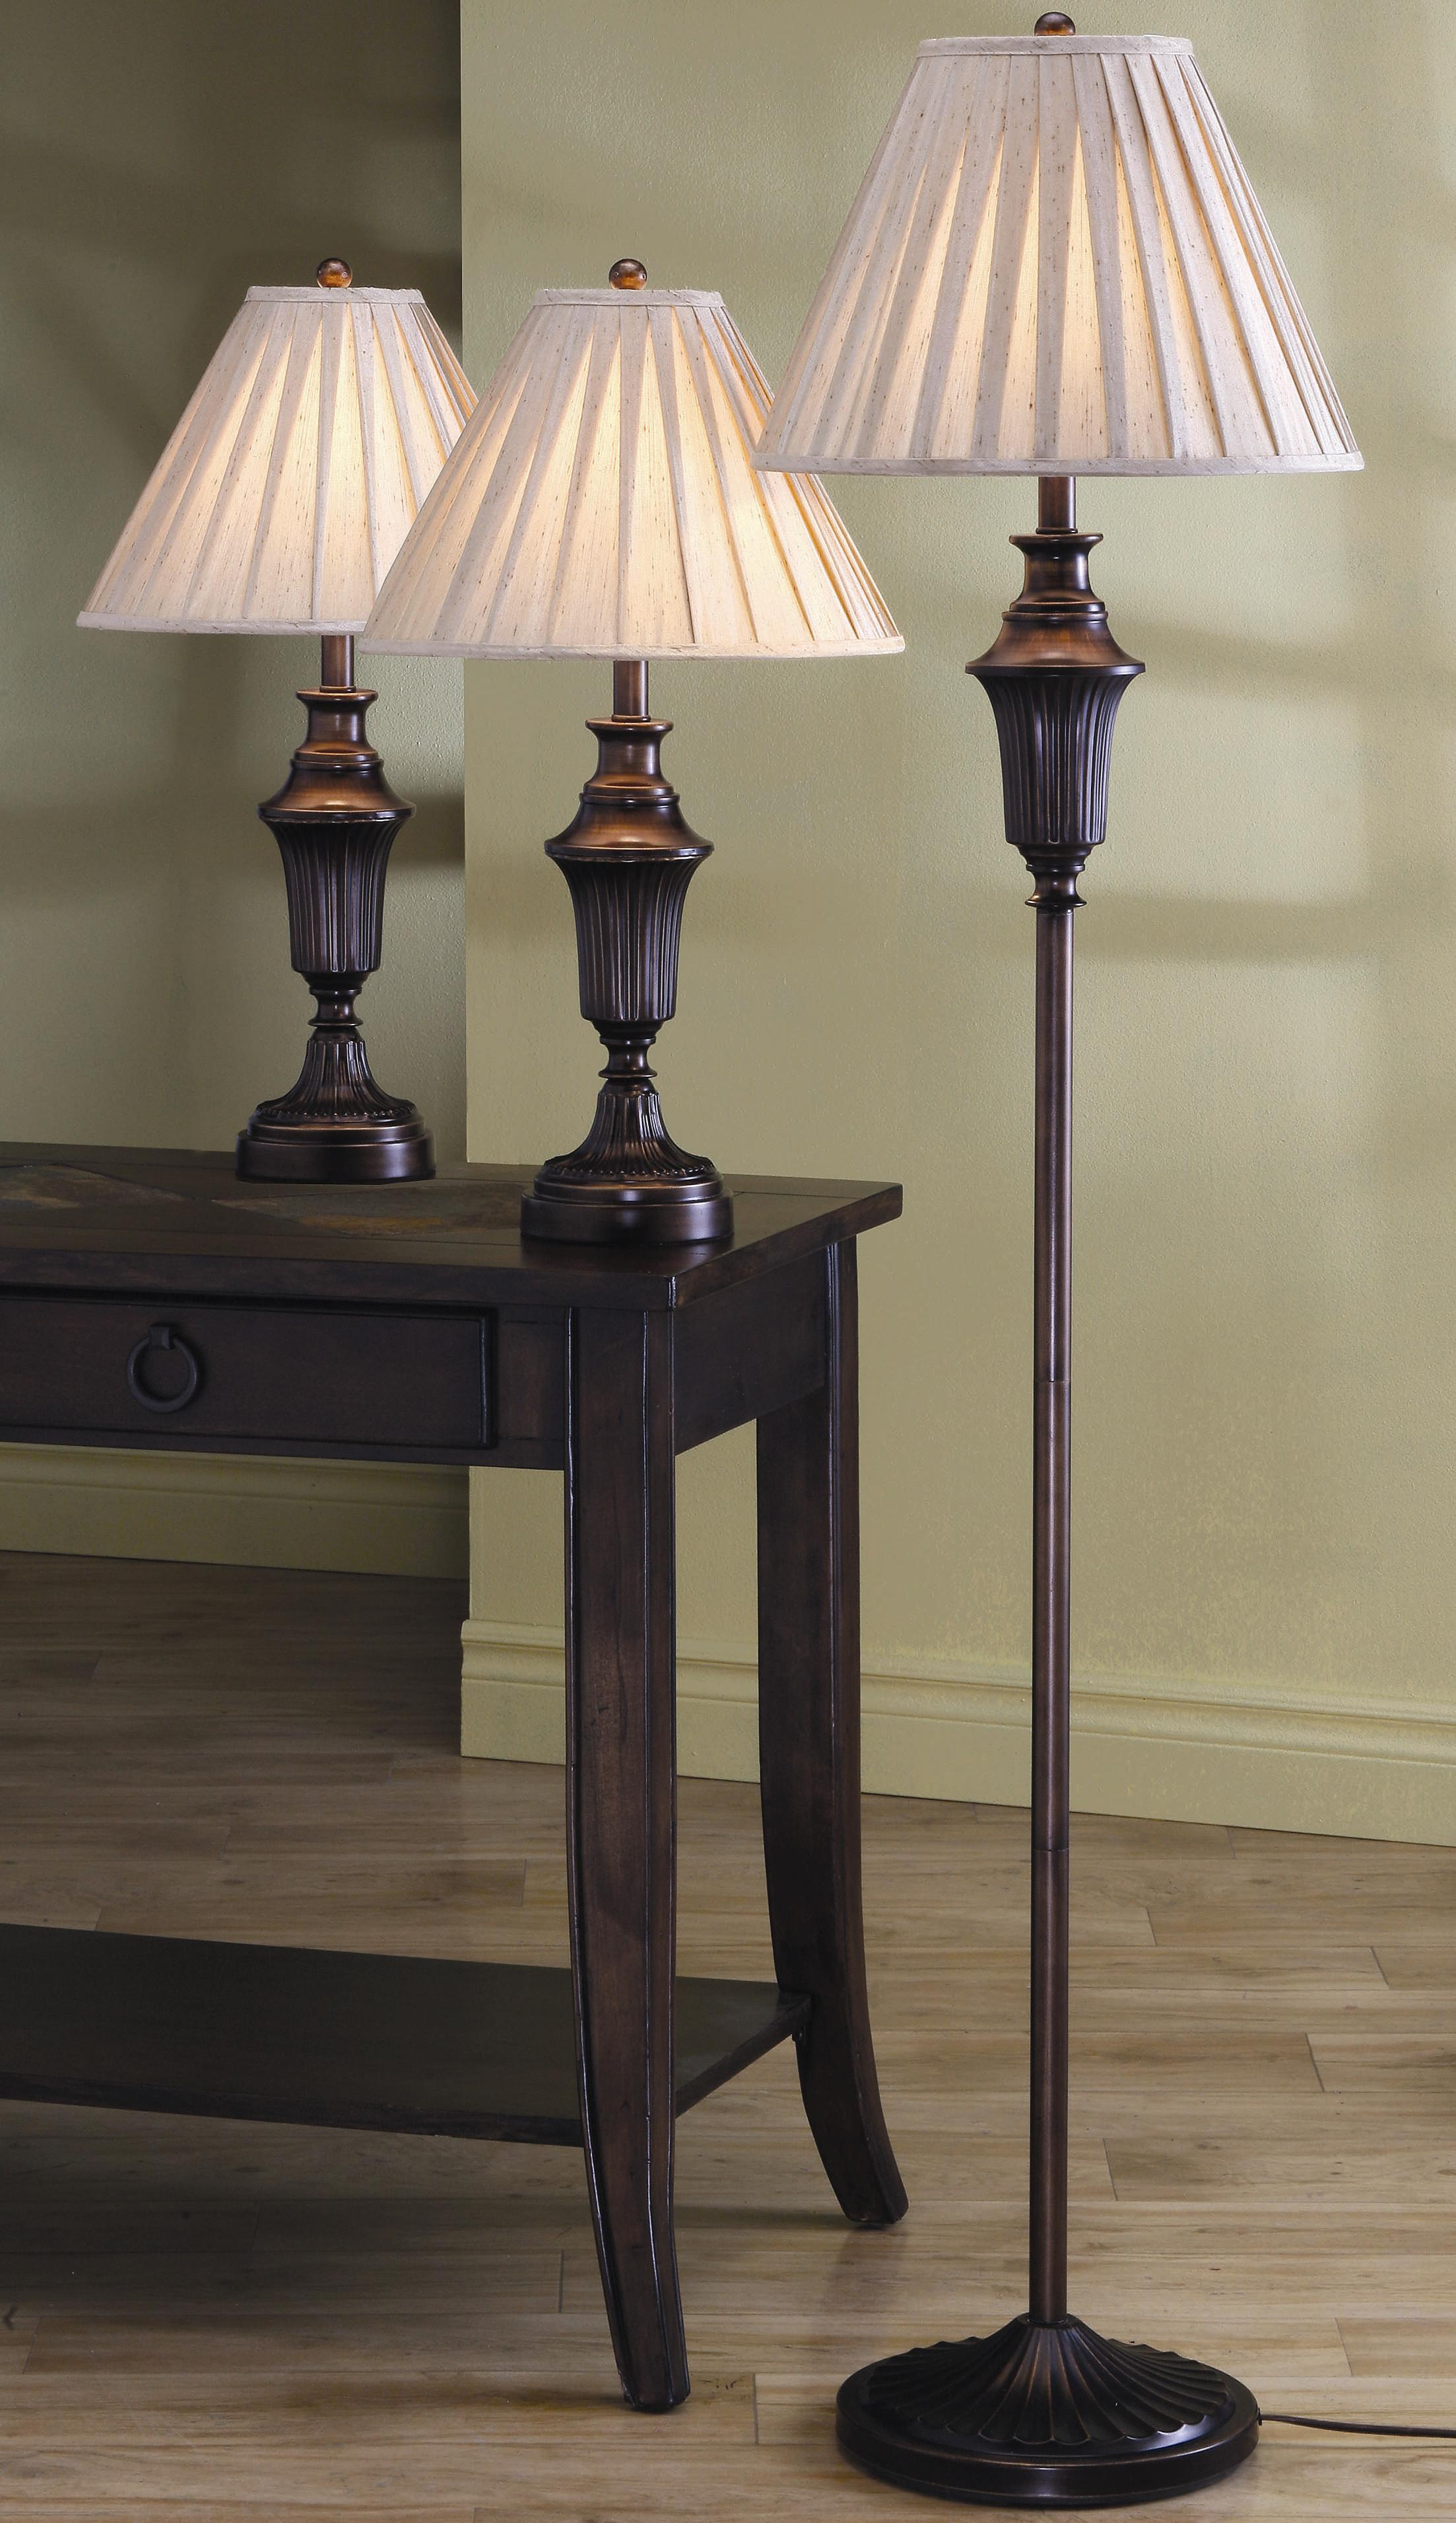 3 Pack Lamp Sets 3 Piece Lamp Set by Coaster at Value City Furniture